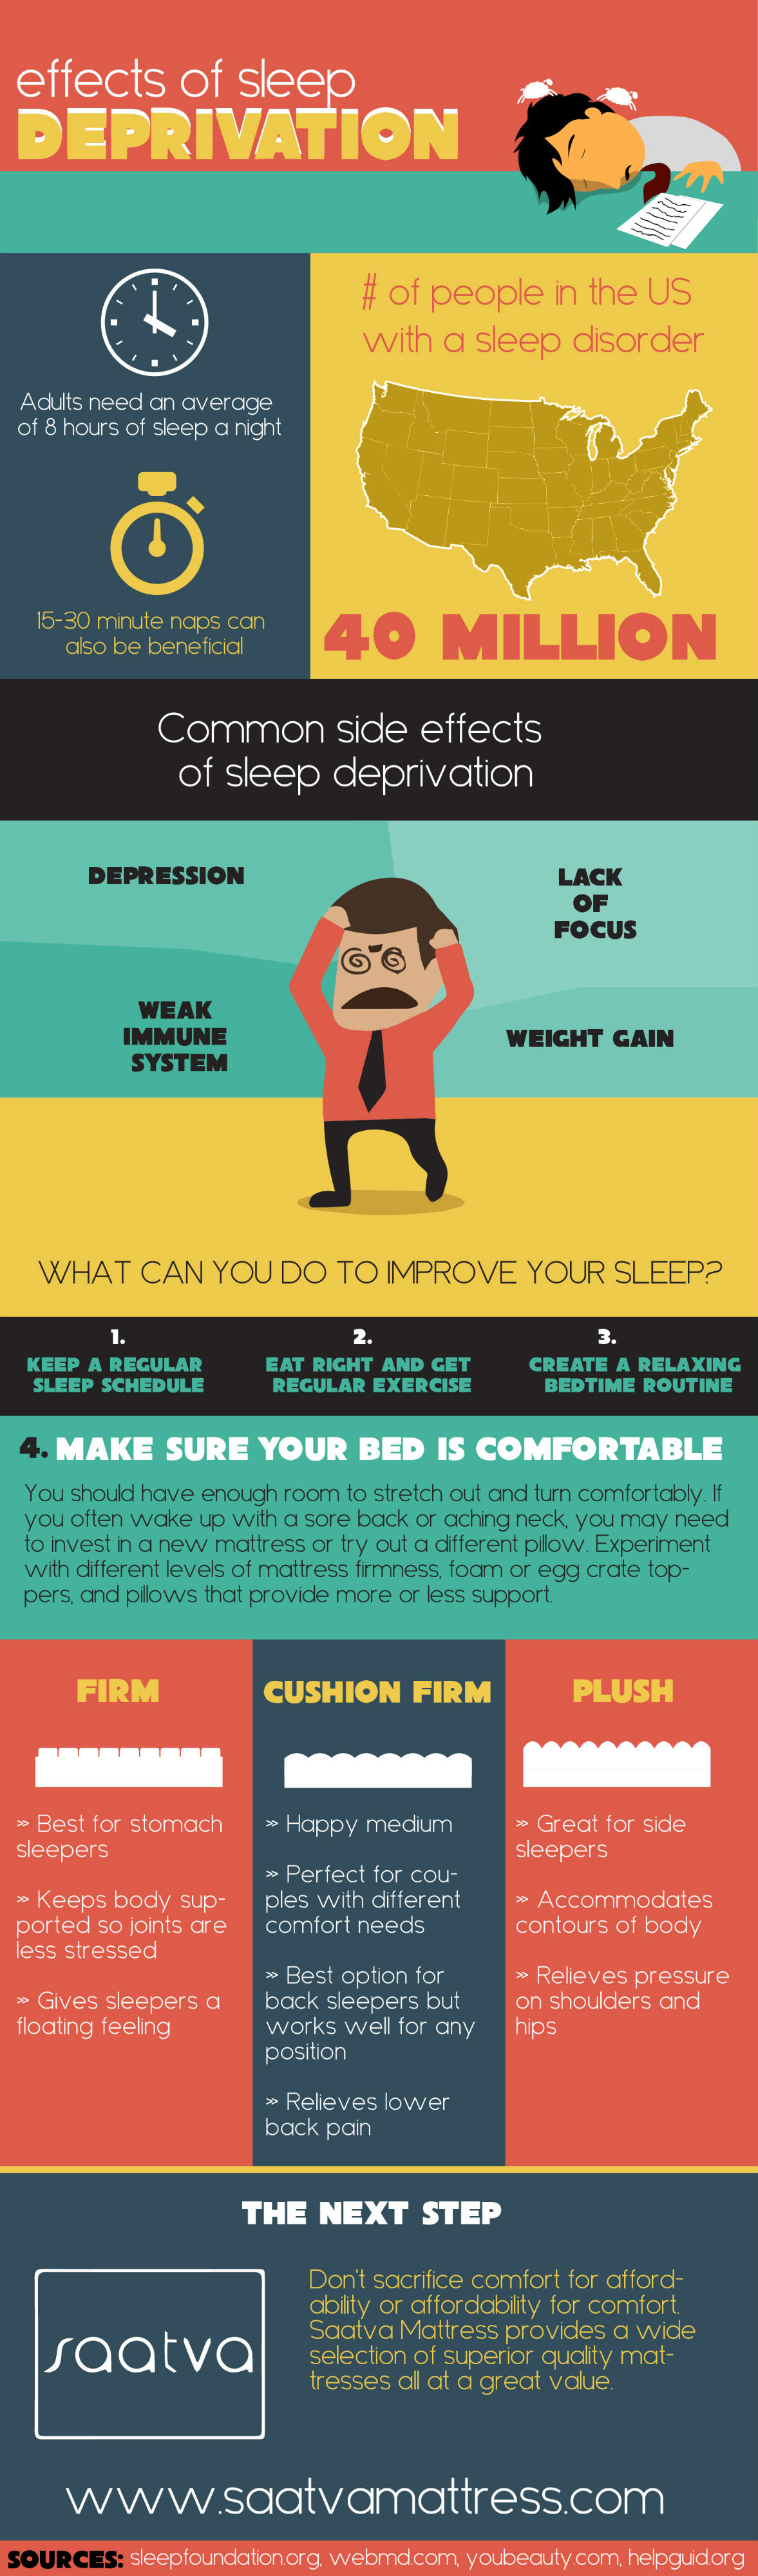 Effects of Sleep Deprivation [Infographic]